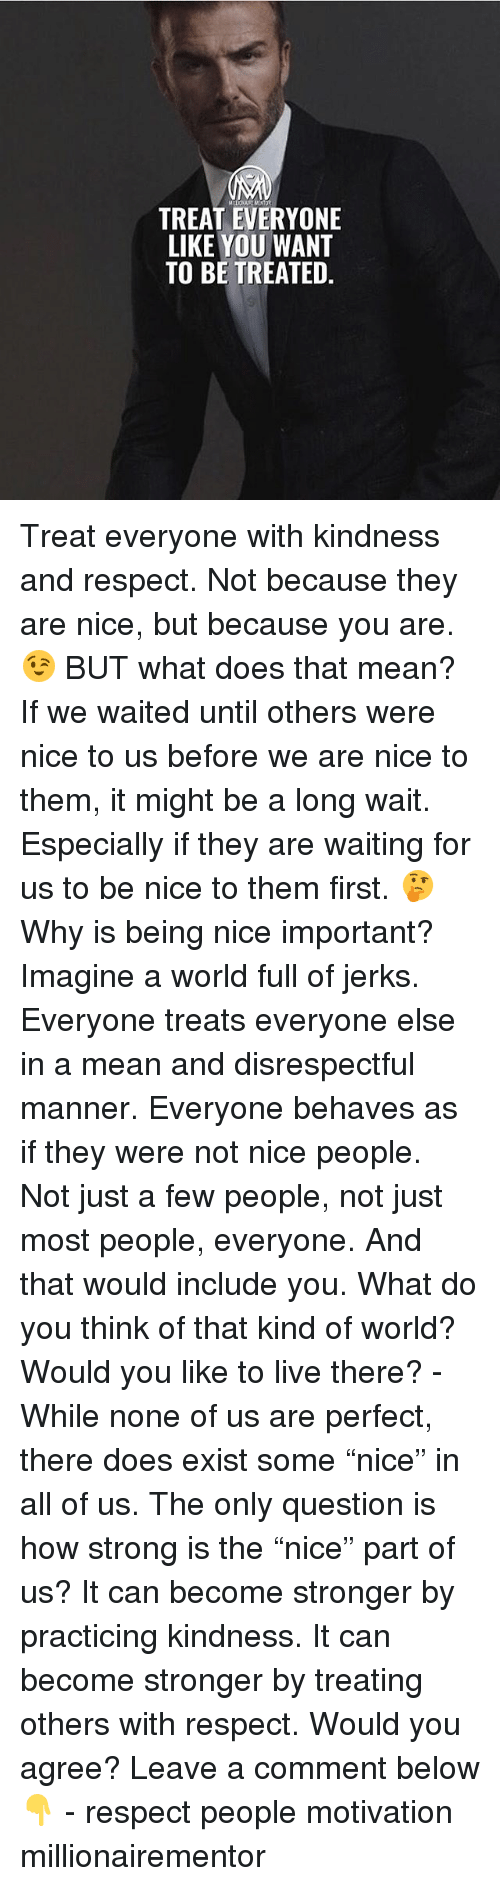 """Nice People: TREAT EVERYONE  LIKE YOU WANT  TO BE TREATED. Treat everyone with kindness and respect. Not because they are nice, but because you are. 😉 BUT what does that mean? If we waited until others were nice to us before we are nice to them, it might be a long wait. Especially if they are waiting for us to be nice to them first. 🤔 Why is being nice important? Imagine a world full of jerks. Everyone treats everyone else in a mean and disrespectful manner. Everyone behaves as if they were not nice people. Not just a few people, not just most people, everyone. And that would include you. What do you think of that kind of world? Would you like to live there? - While none of us are perfect, there does exist some """"nice"""" in all of us. The only question is how strong is the """"nice"""" part of us? It can become stronger by practicing kindness. It can become stronger by treating others with respect. Would you agree? Leave a comment below 👇 - respect people motivation millionairementor"""